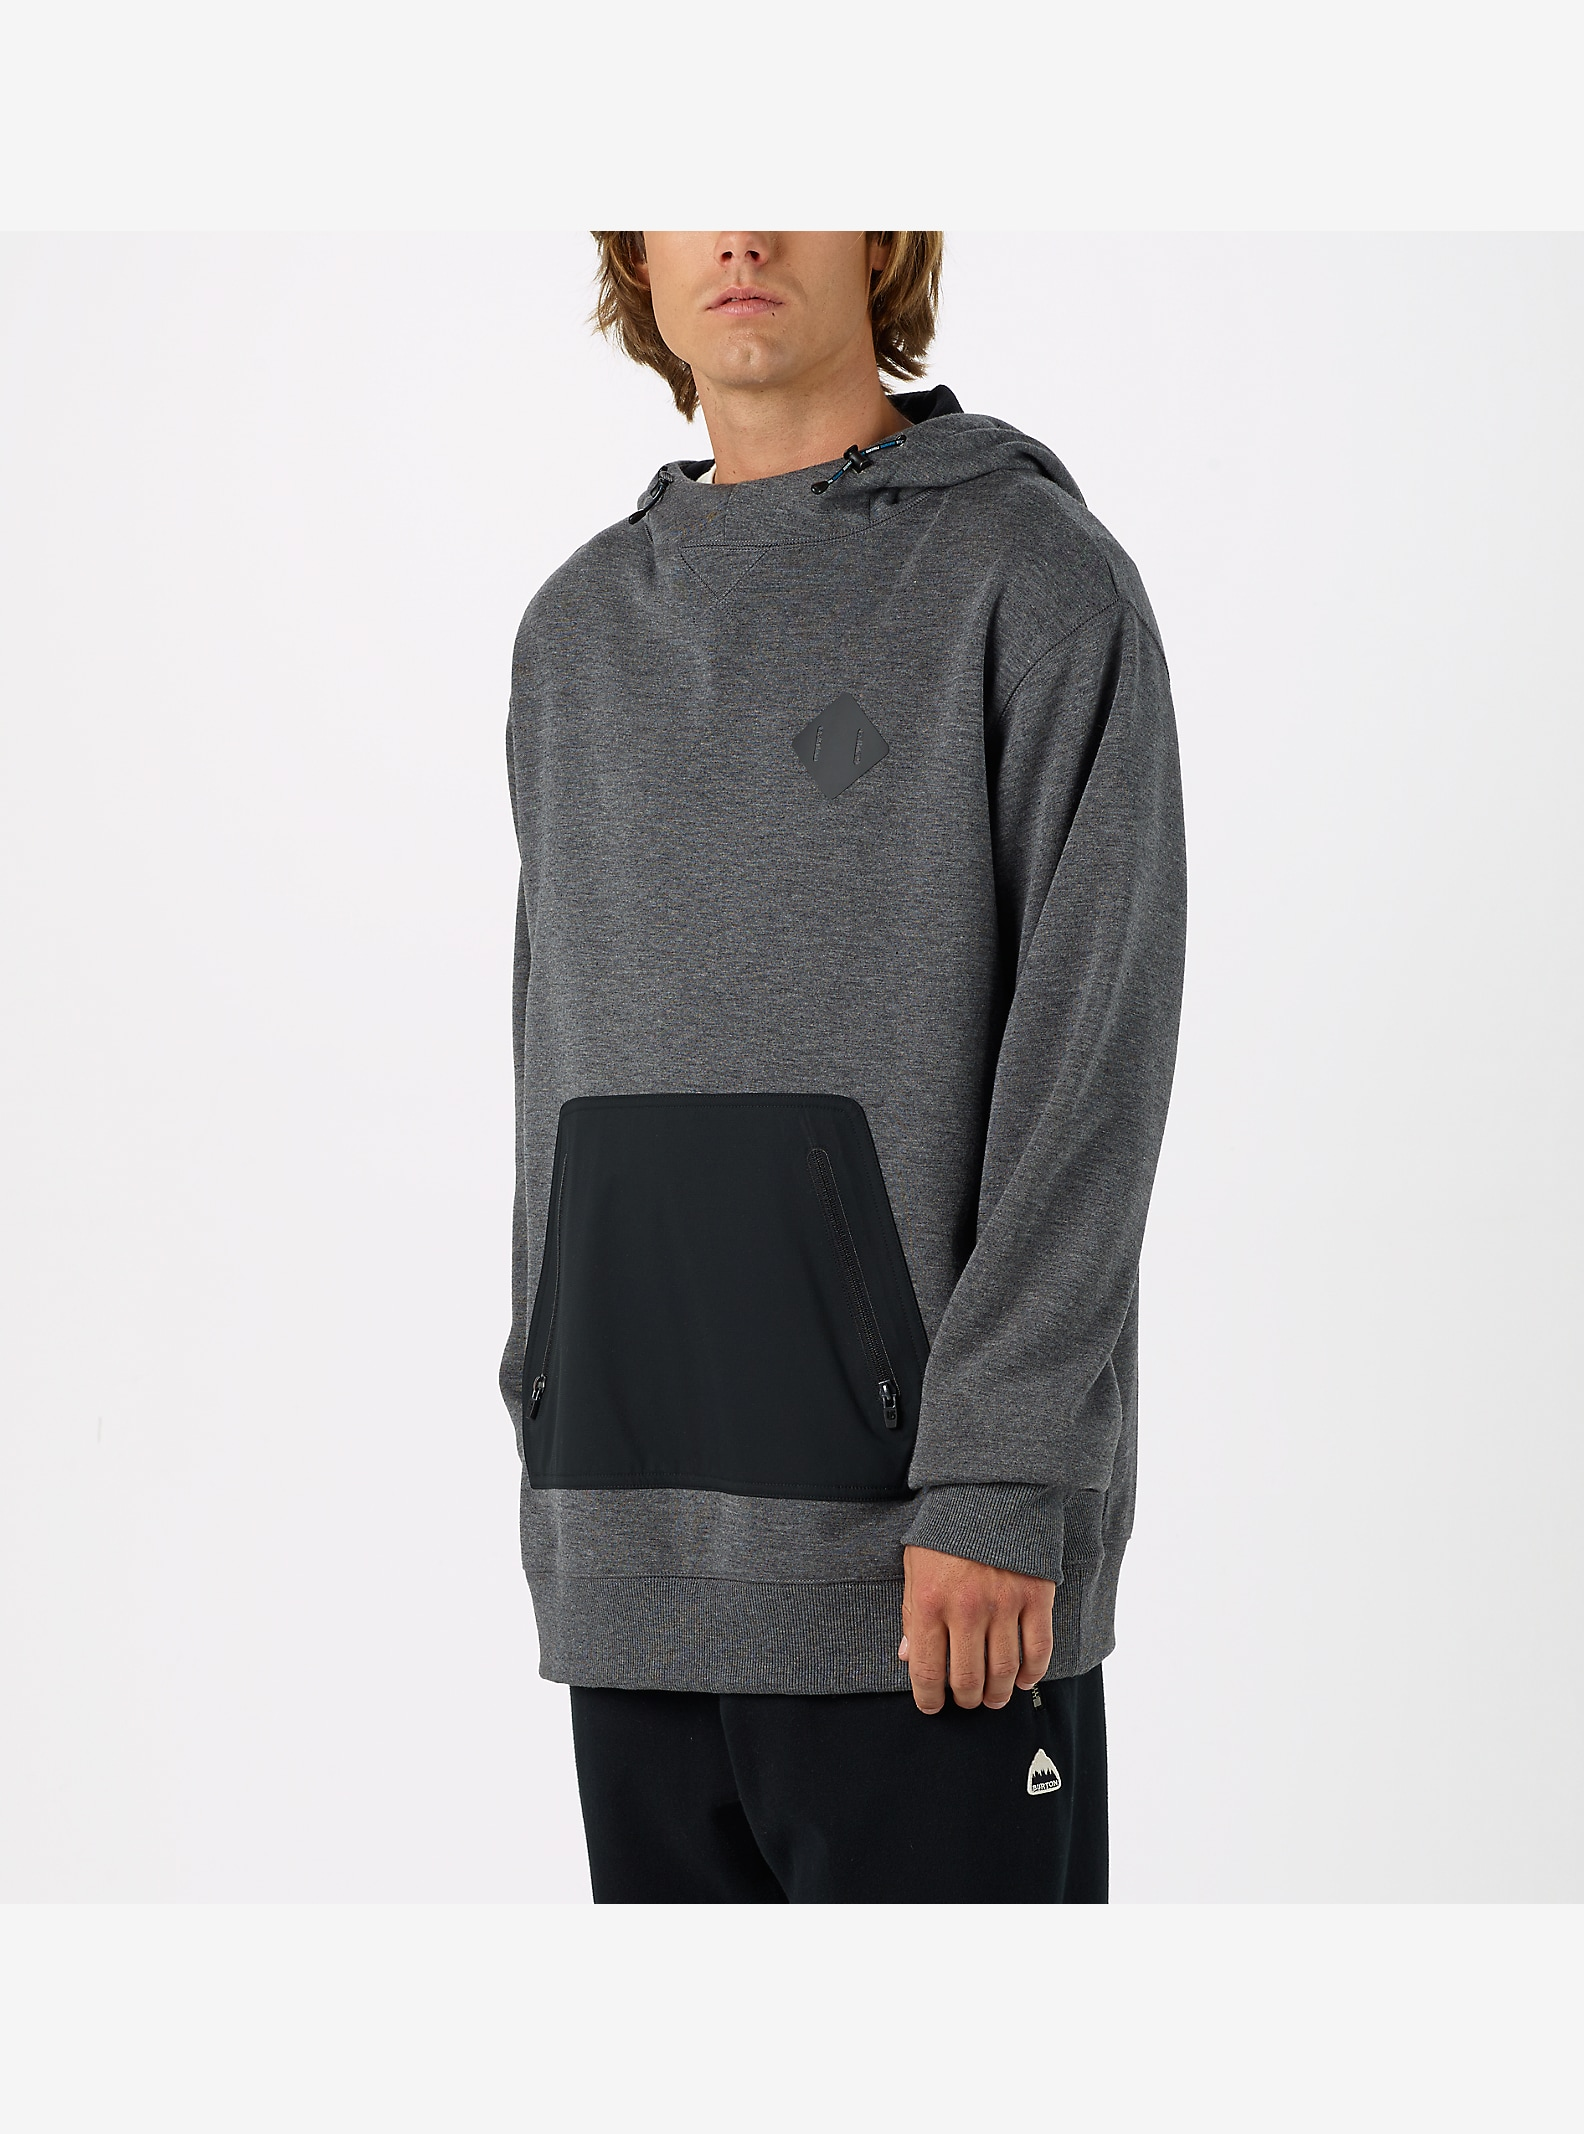 Burton Hemlock Bonded Pullover Hoodie shown in True Black Heather